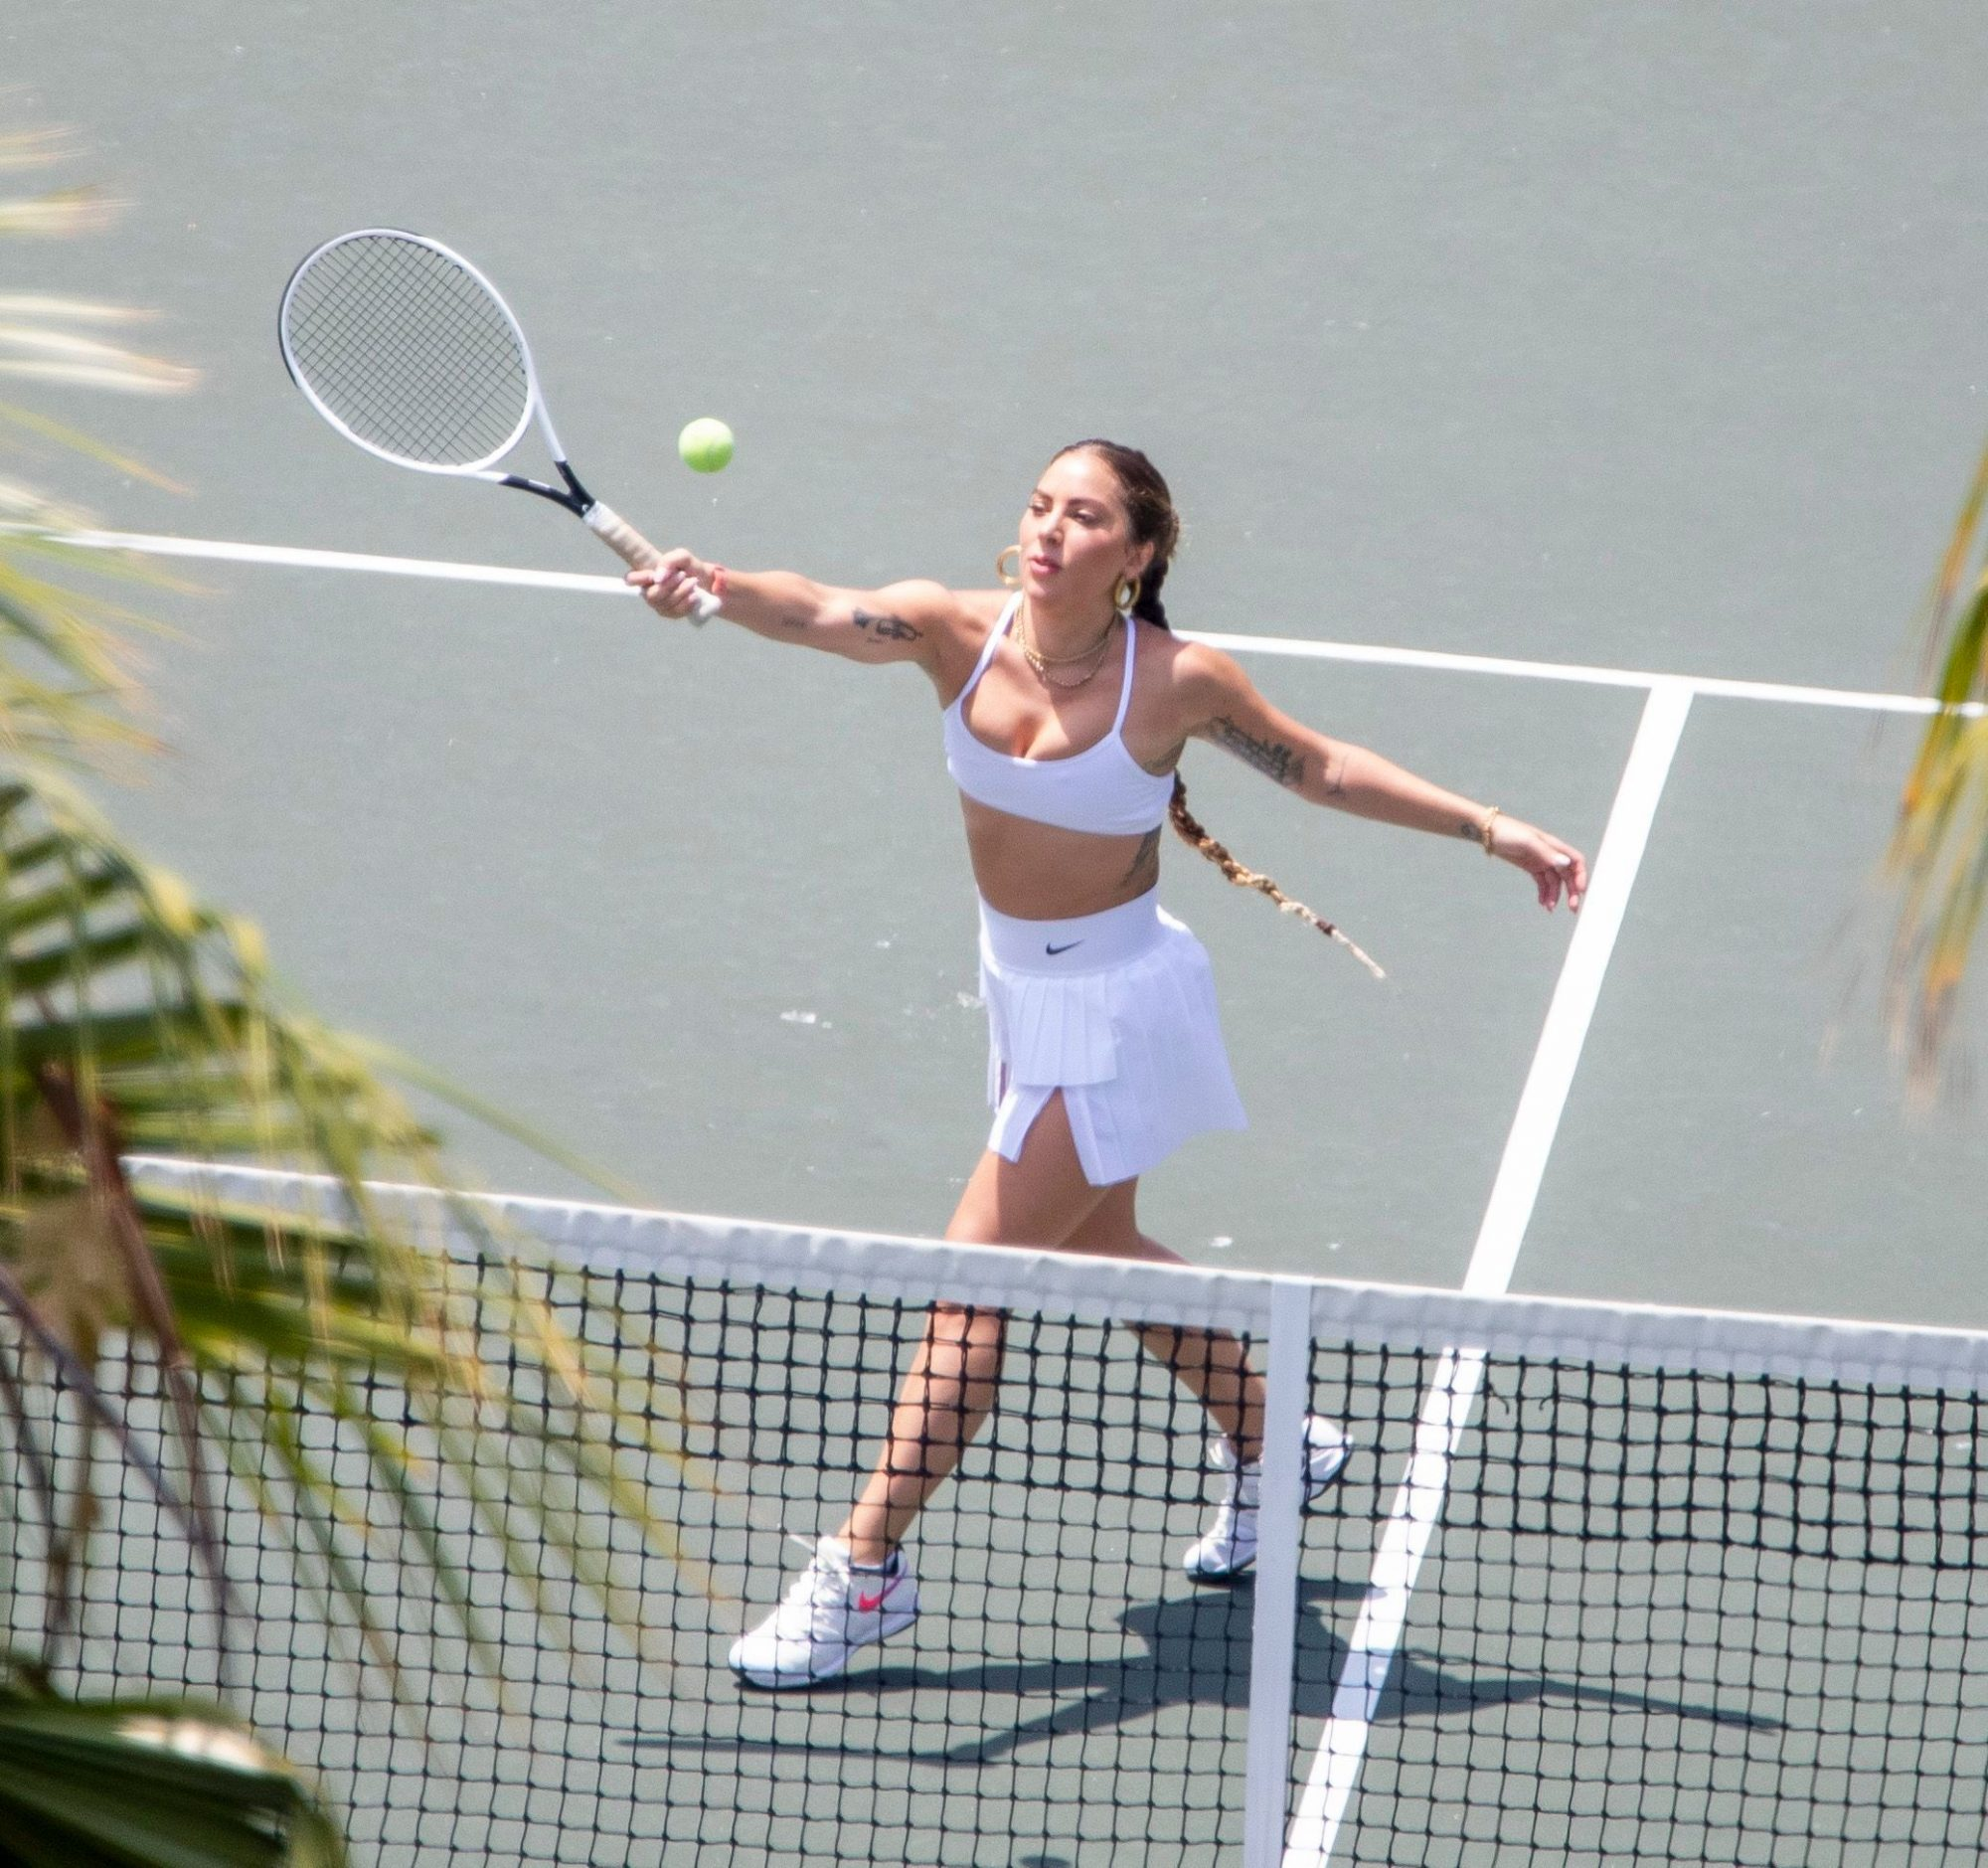 Lady Gaga Puts on an Athletic Display while Taking Tennis Lessons